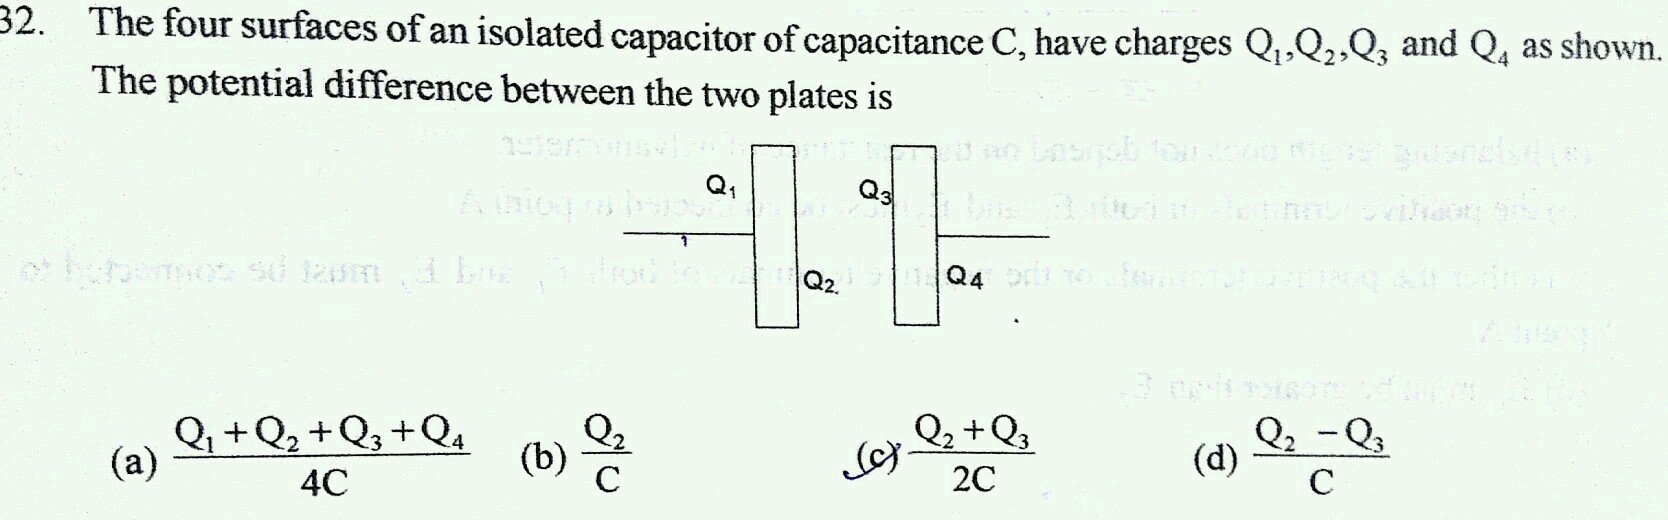 a parallel plate capacitor is charged by battery which is